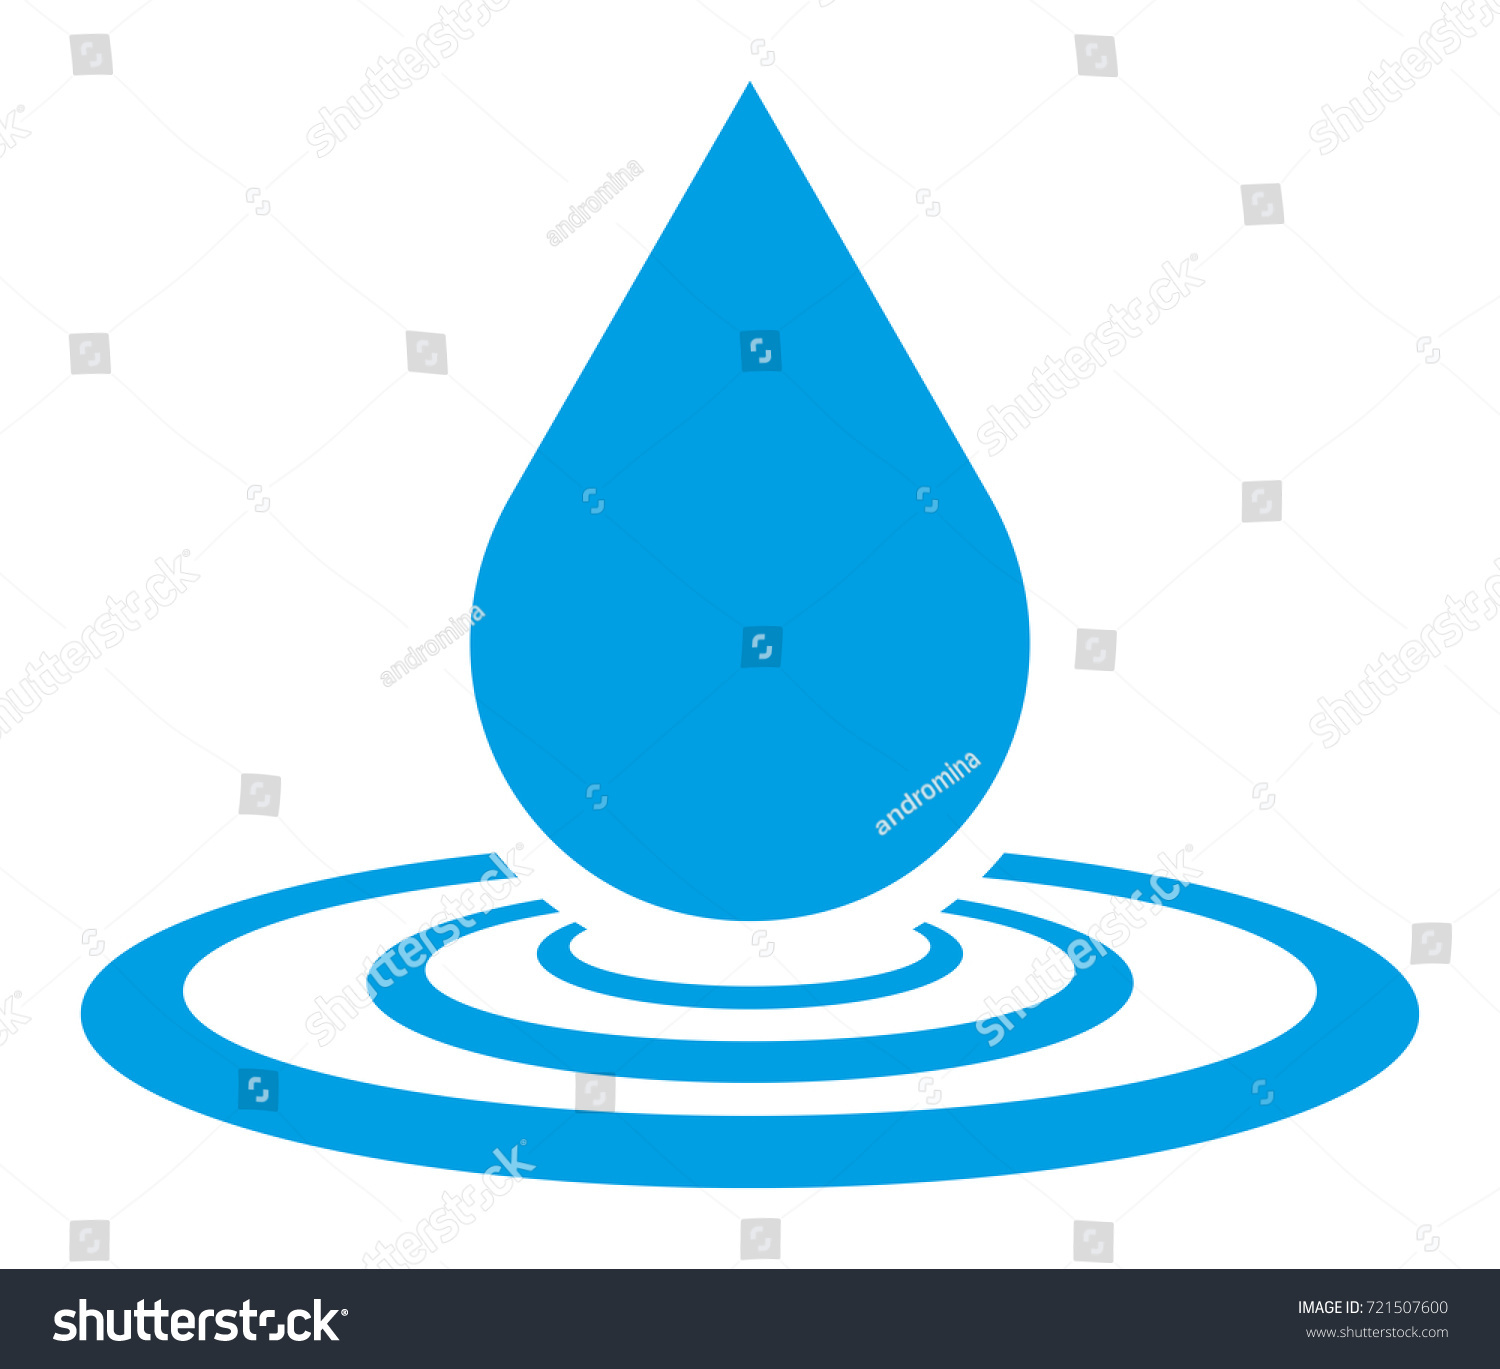 water drop vector icon stock vector 2018 721507600 shutterstock rh shutterstock com water droplet background vector water droplet vector art